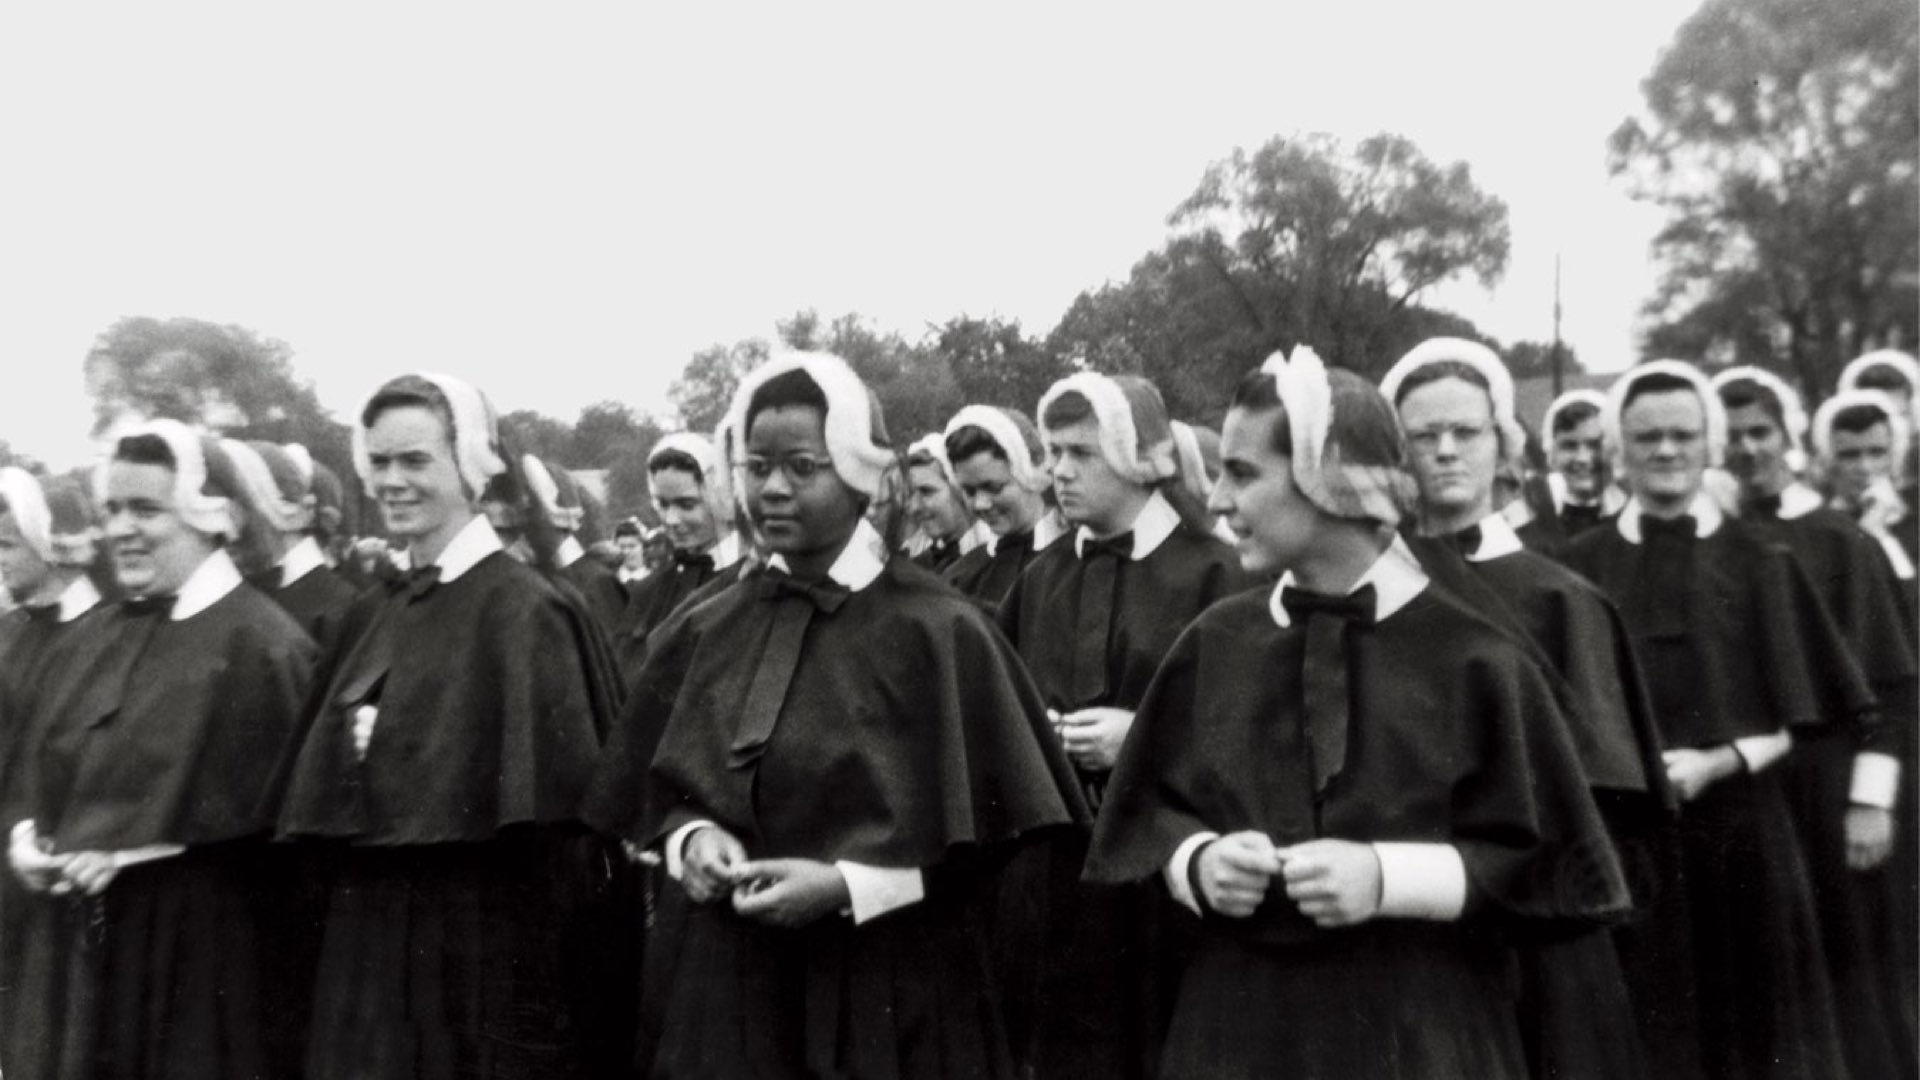 A black-and-white photo of a young Sister Cora Billings in habit amid a large crowd of novitiate nuns